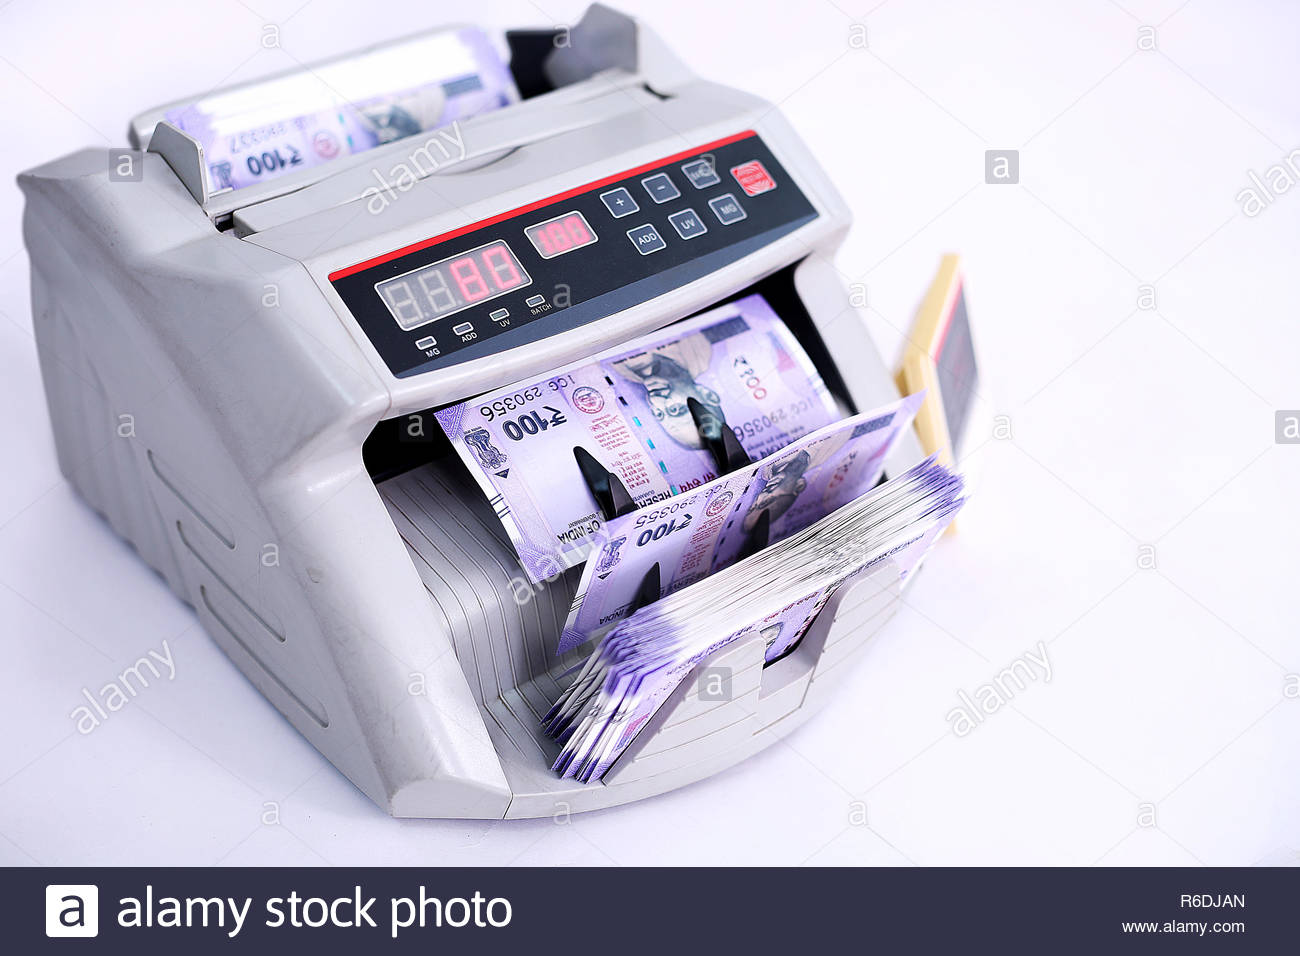 Banknote counter is counting Indian banknotes Isolated on the 1300x956